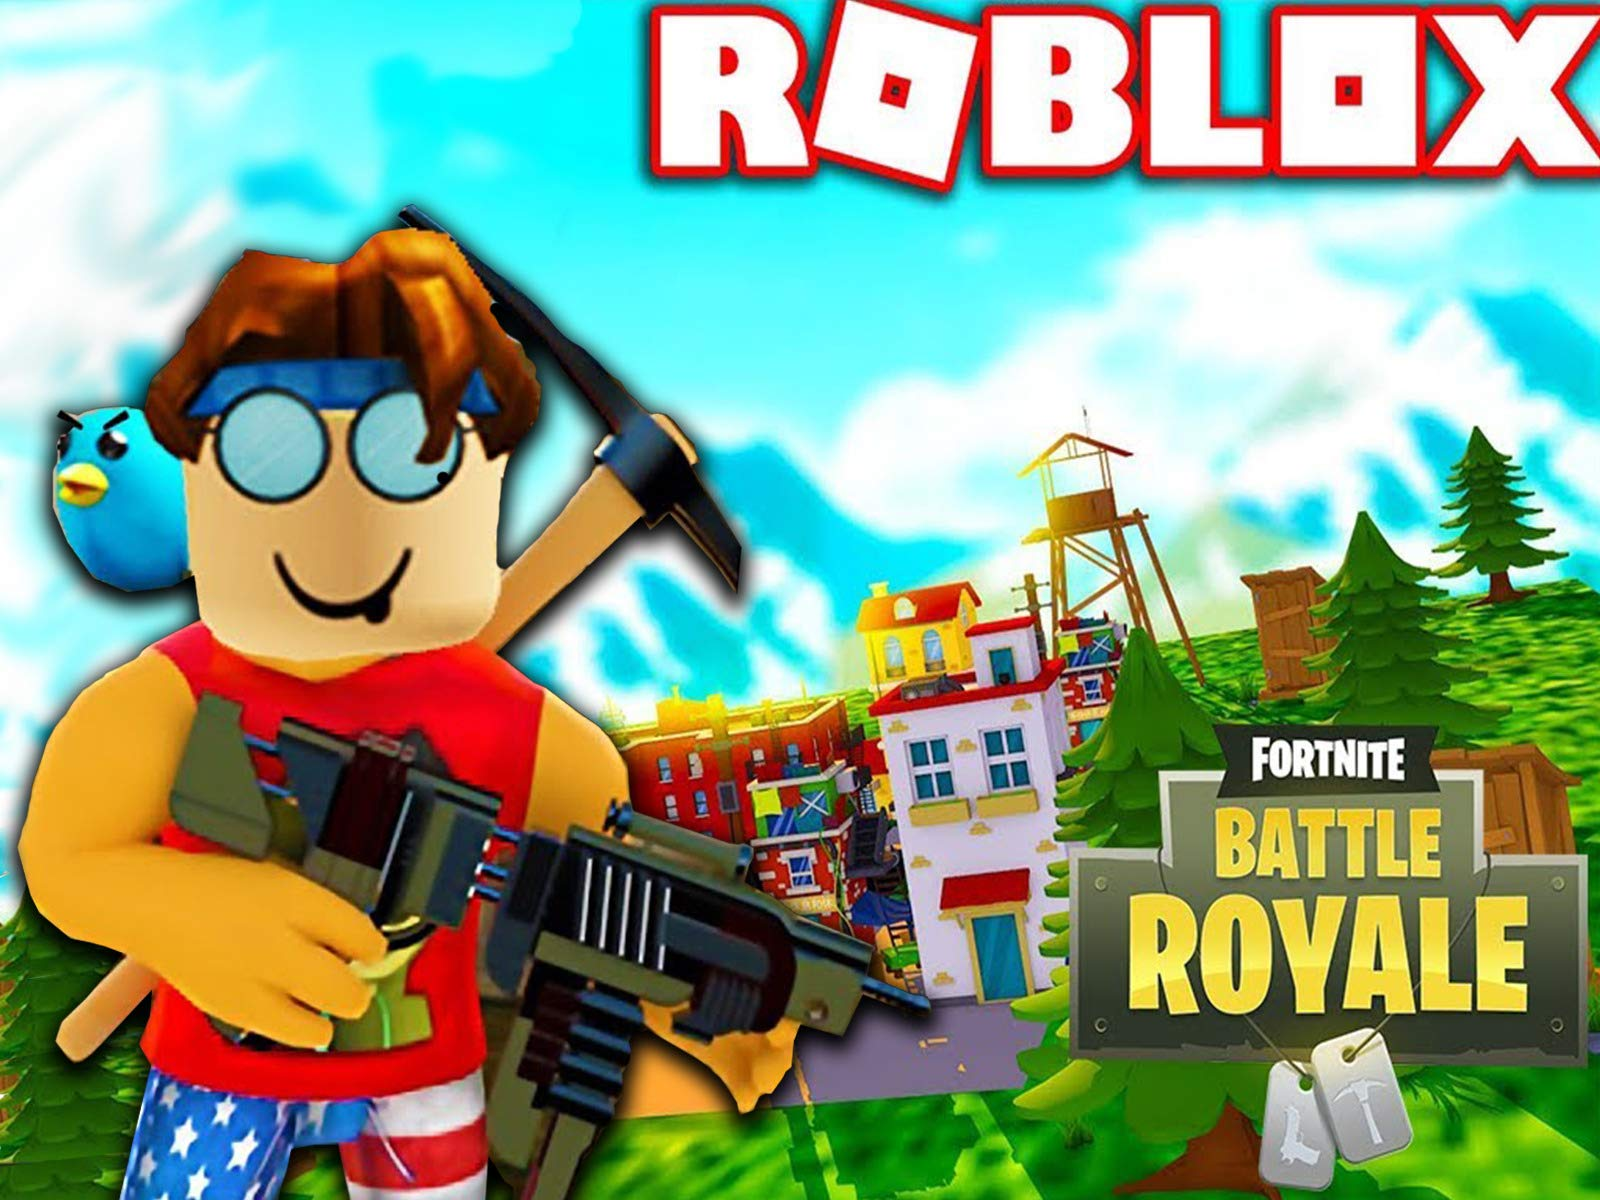 Roblox Studio Gun Animation Watch Clip Roblox Shooting Games Gameplay Hrithik Prime Video